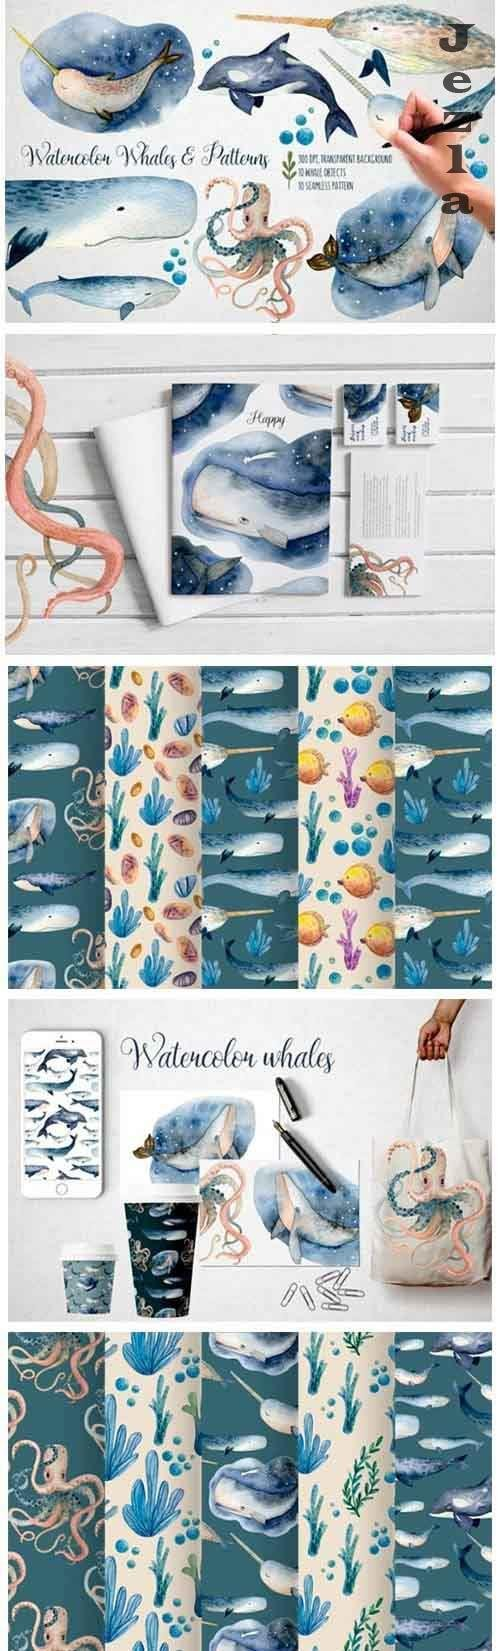 Watercolor Whales & Patterns - 5228352